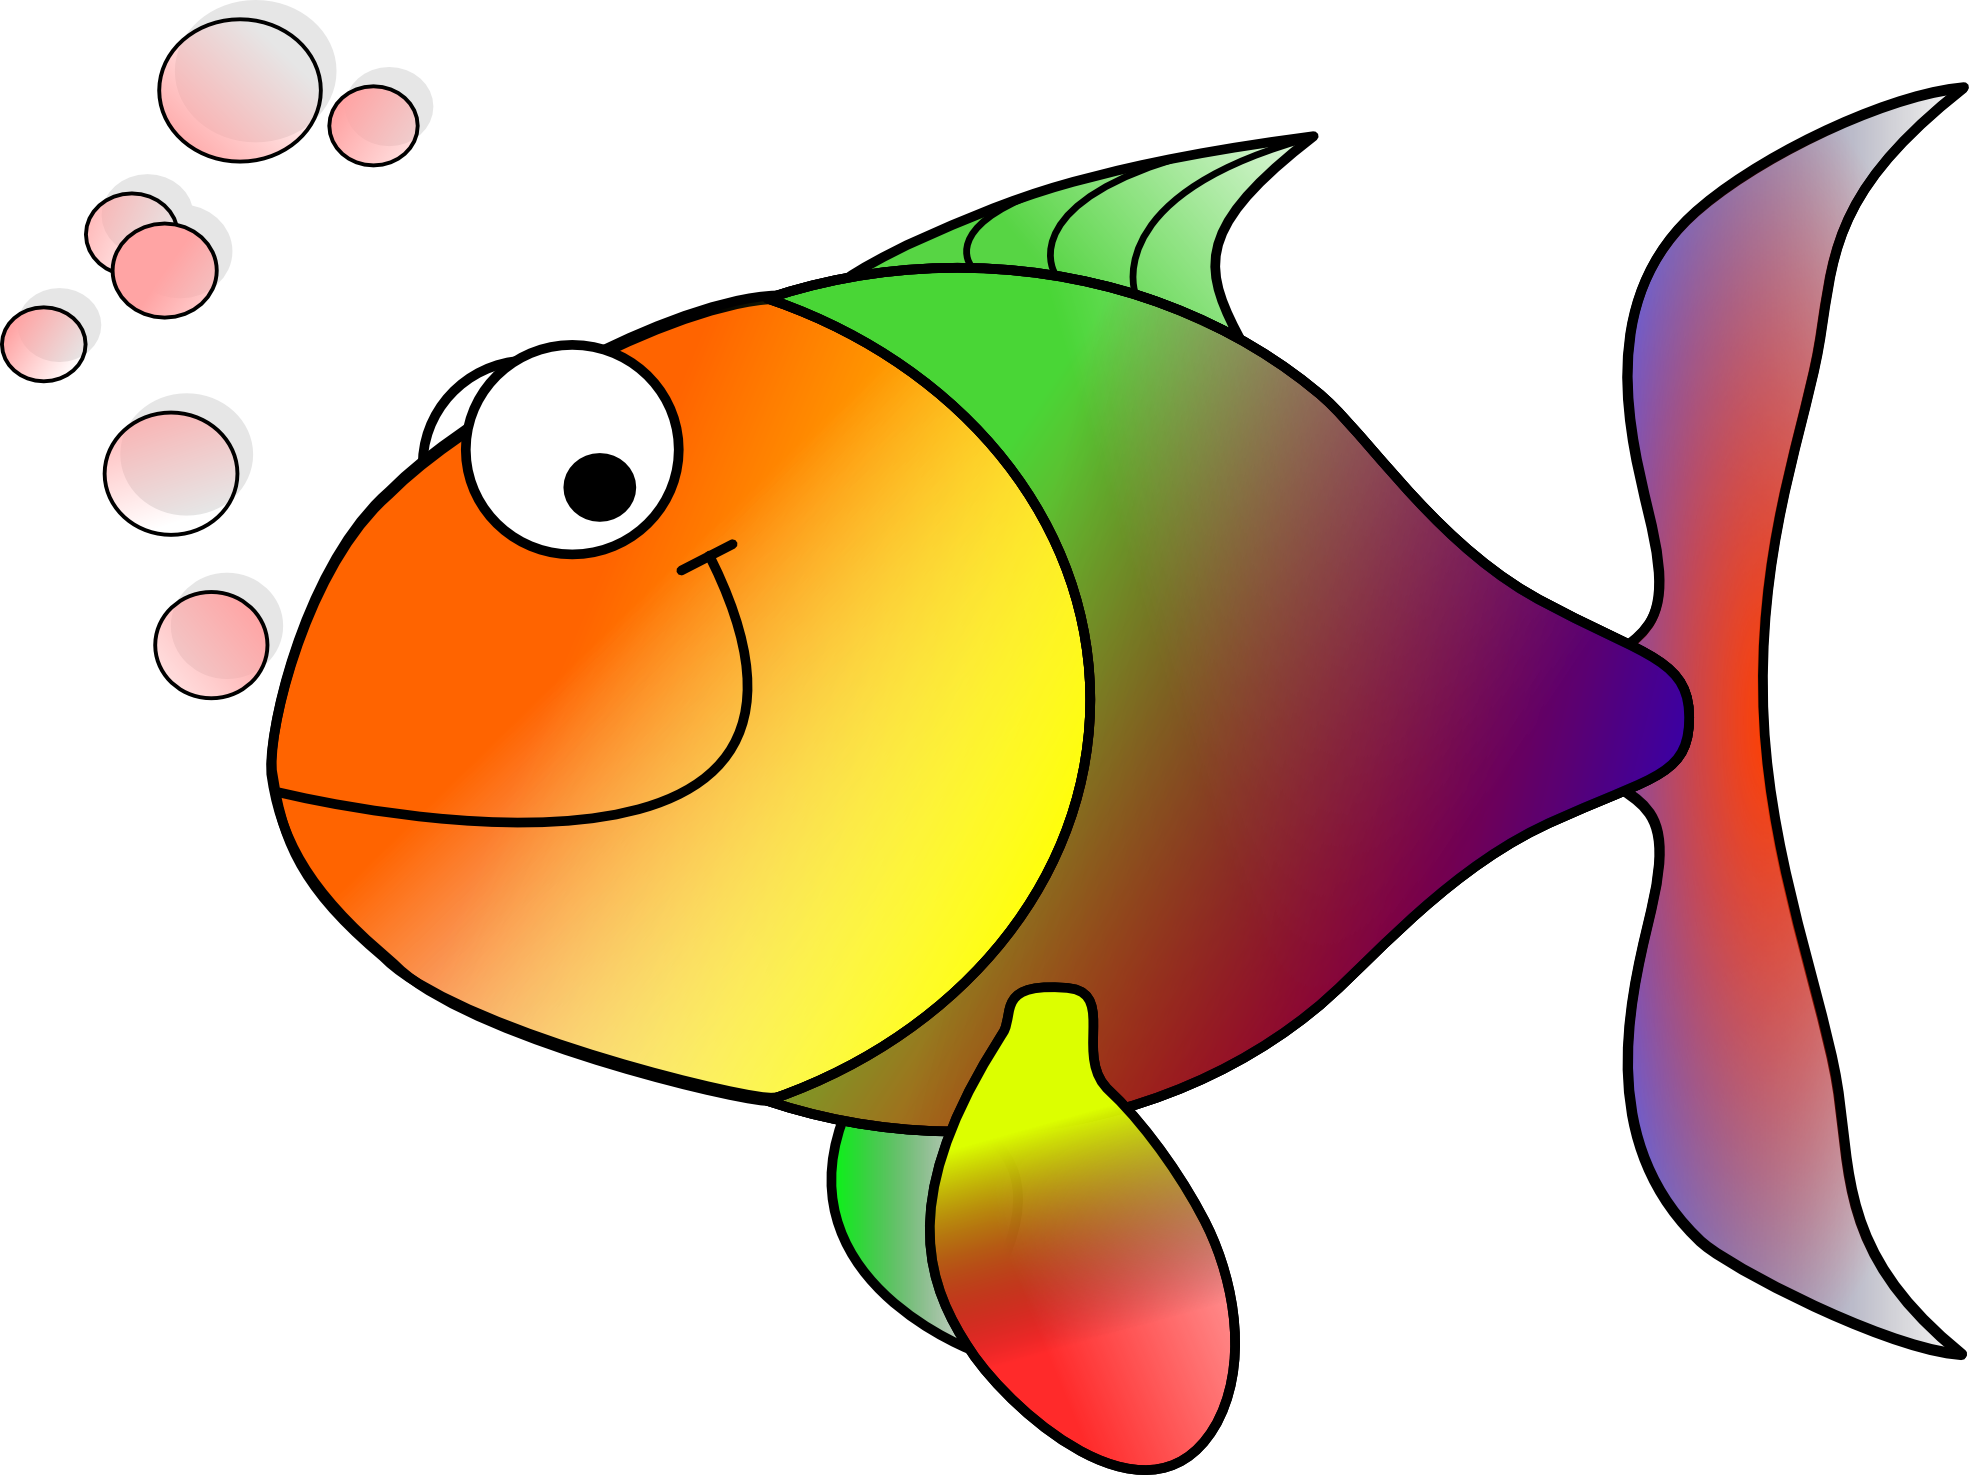 Clipart images of tropical fish clip art freeuse download Free Clip art - Clip Art Collection - Download Clipart on Clipart ... clip art freeuse download